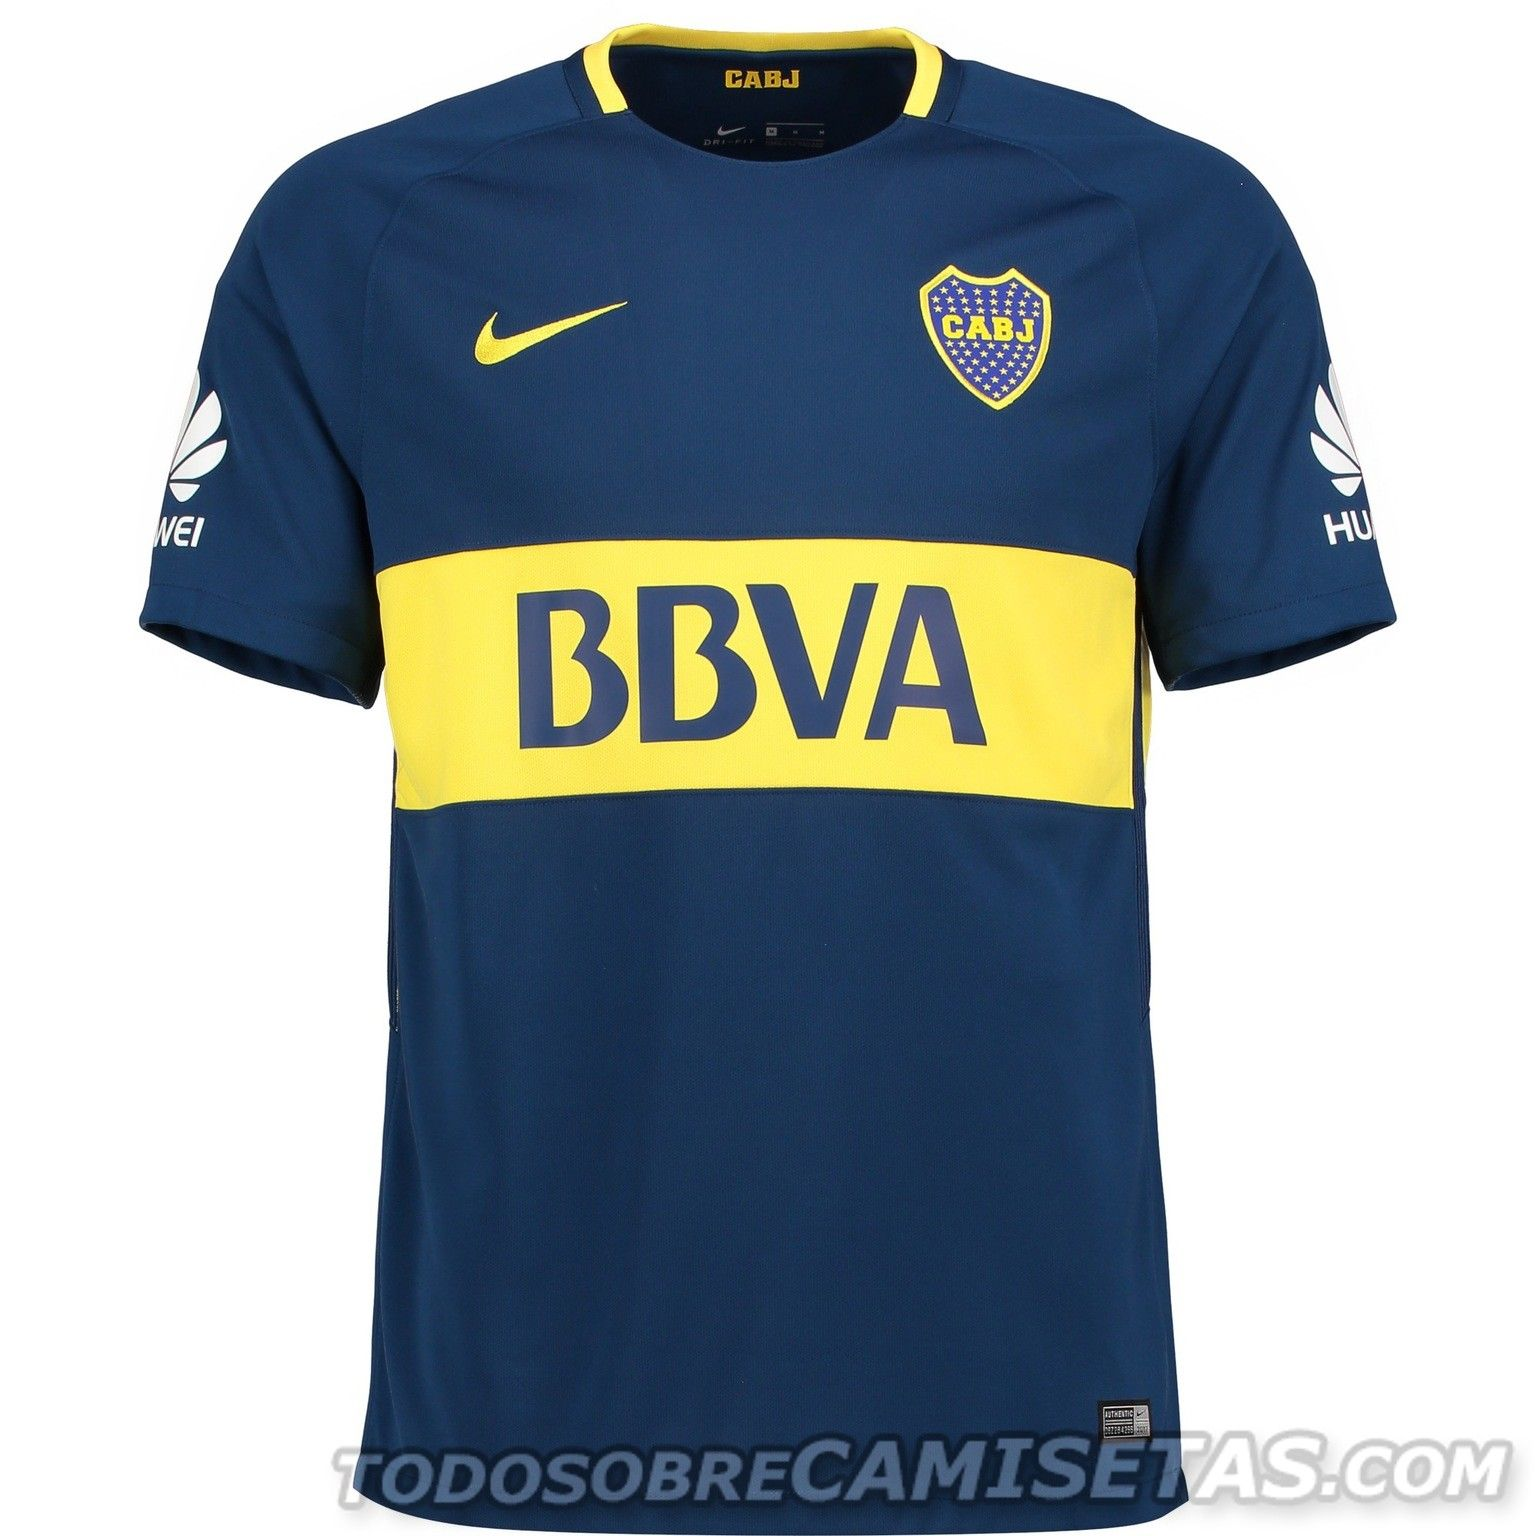 Camiseta Local Nike de Boca Juniors 2017-18  c0f29e88cf96c